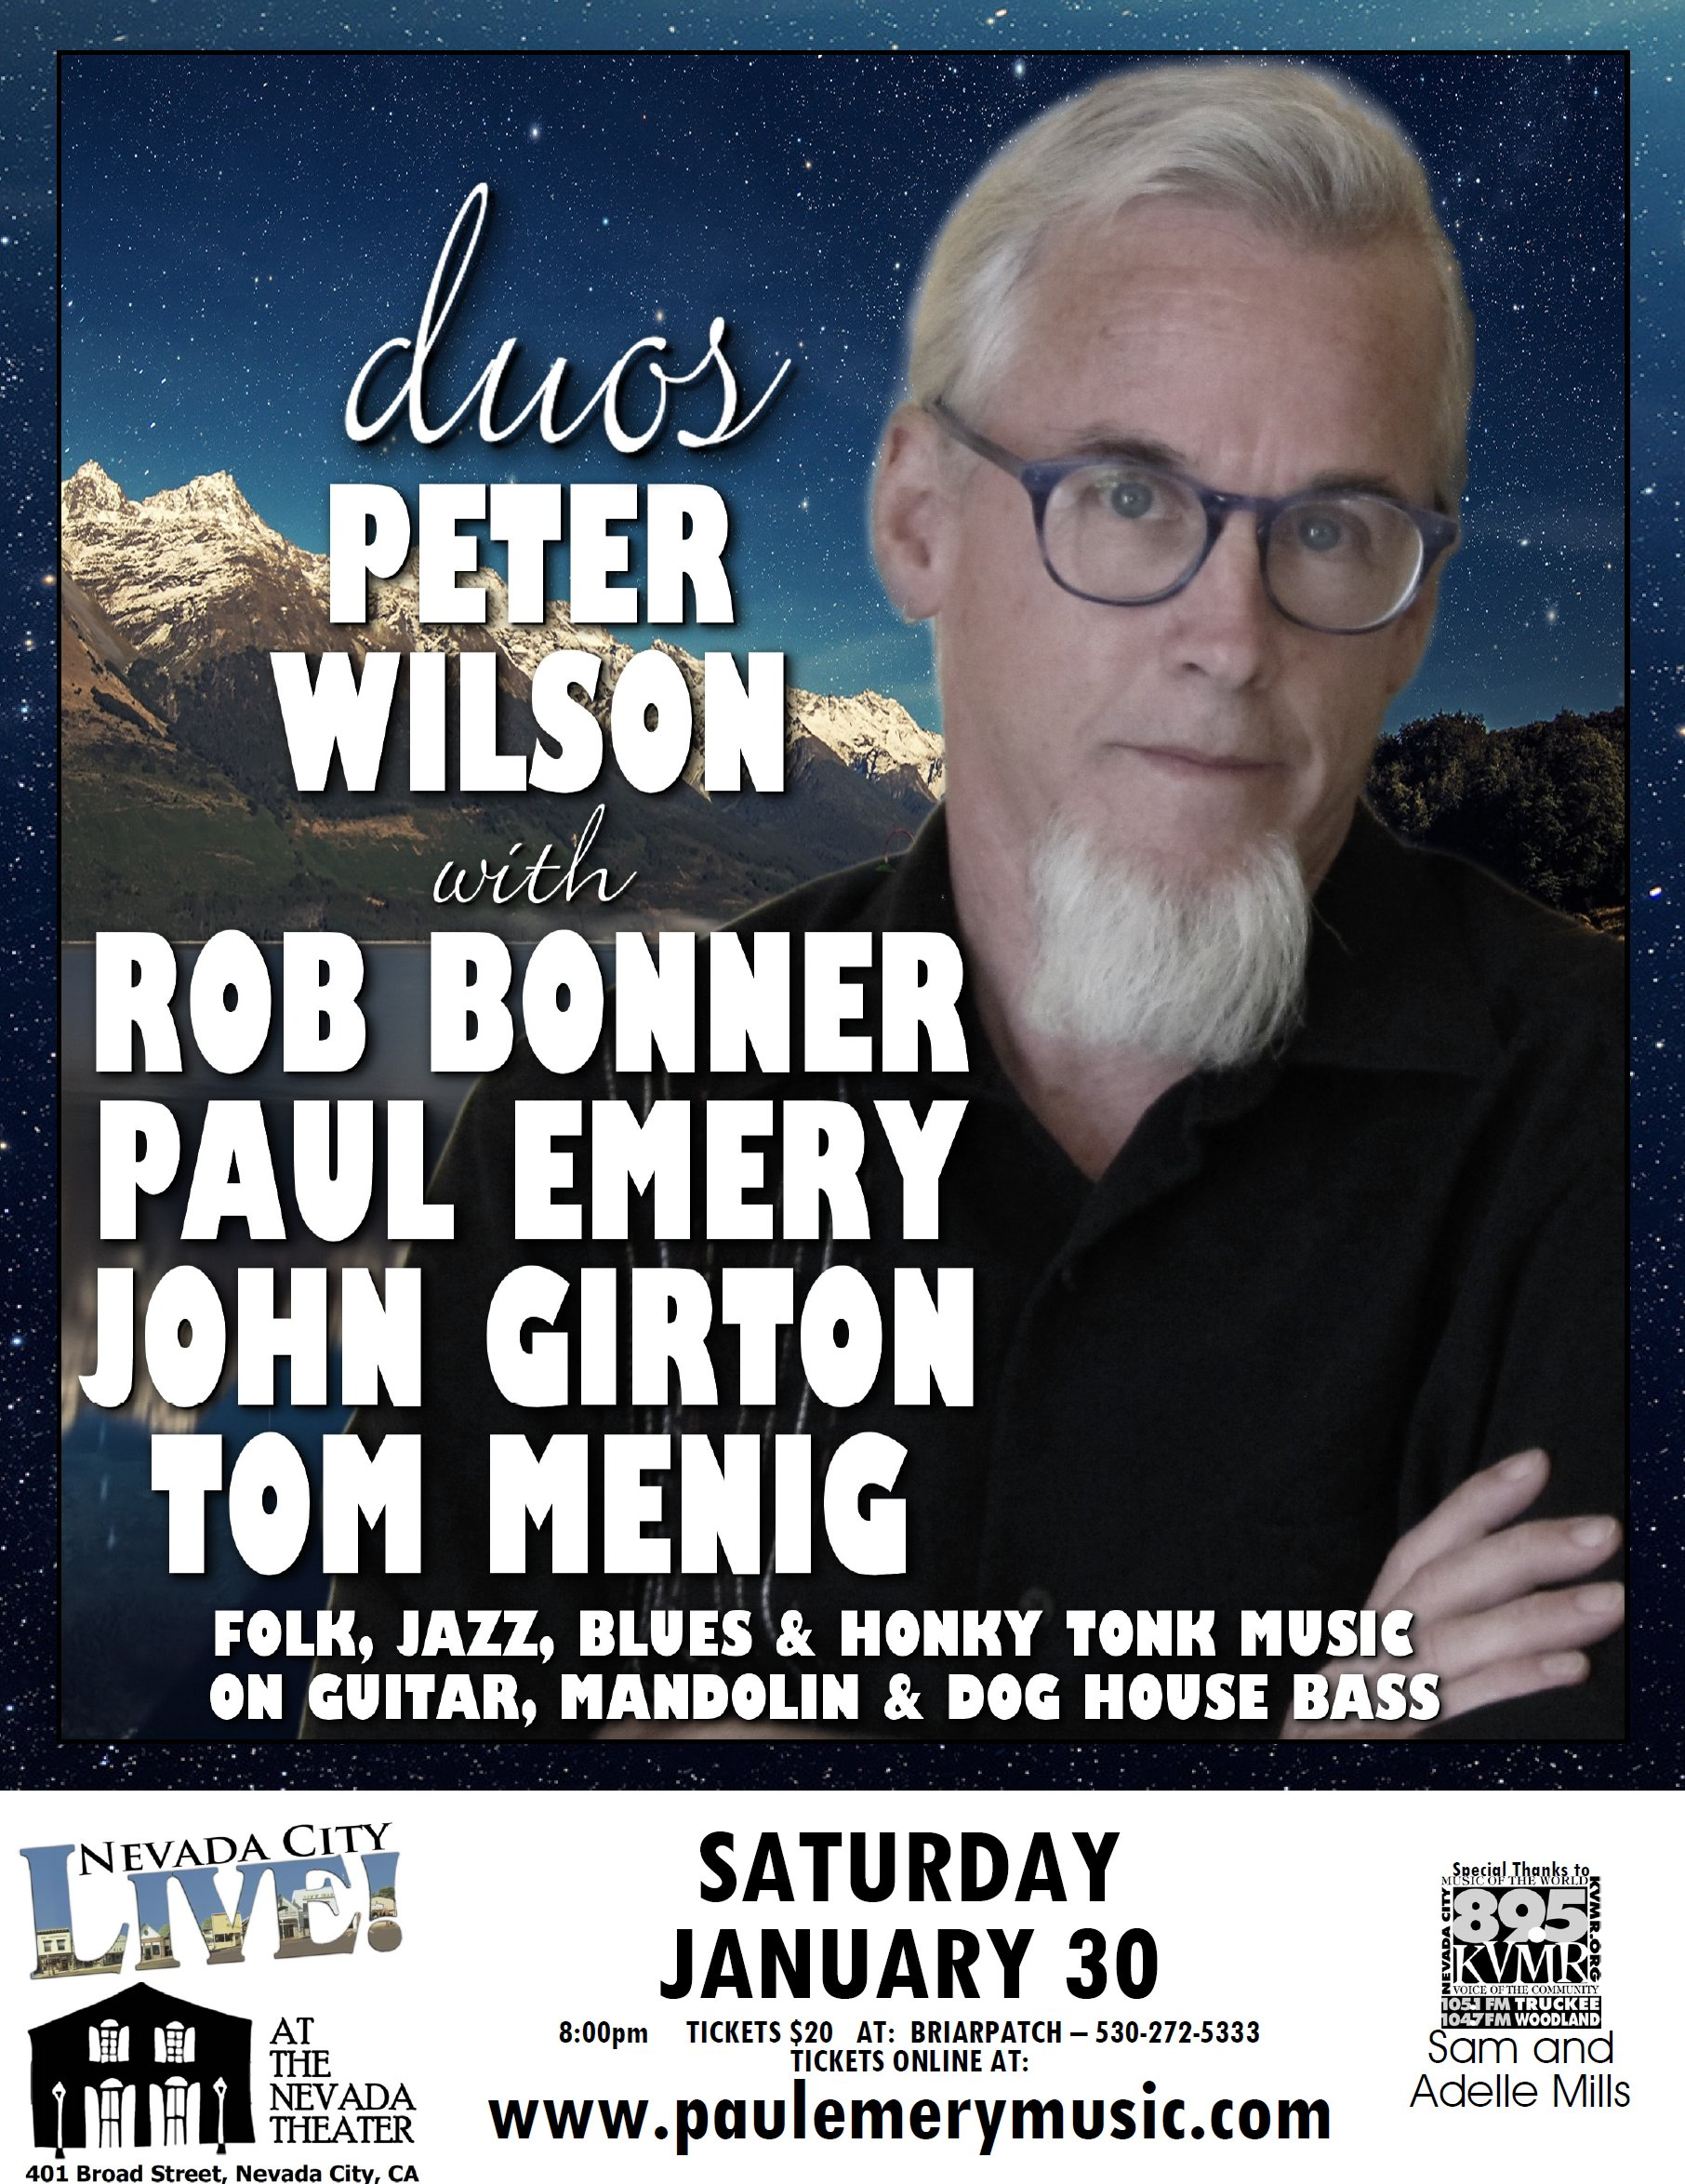 2016-01 - Nevada City Live - Peter Wilson Duos 8.5X11